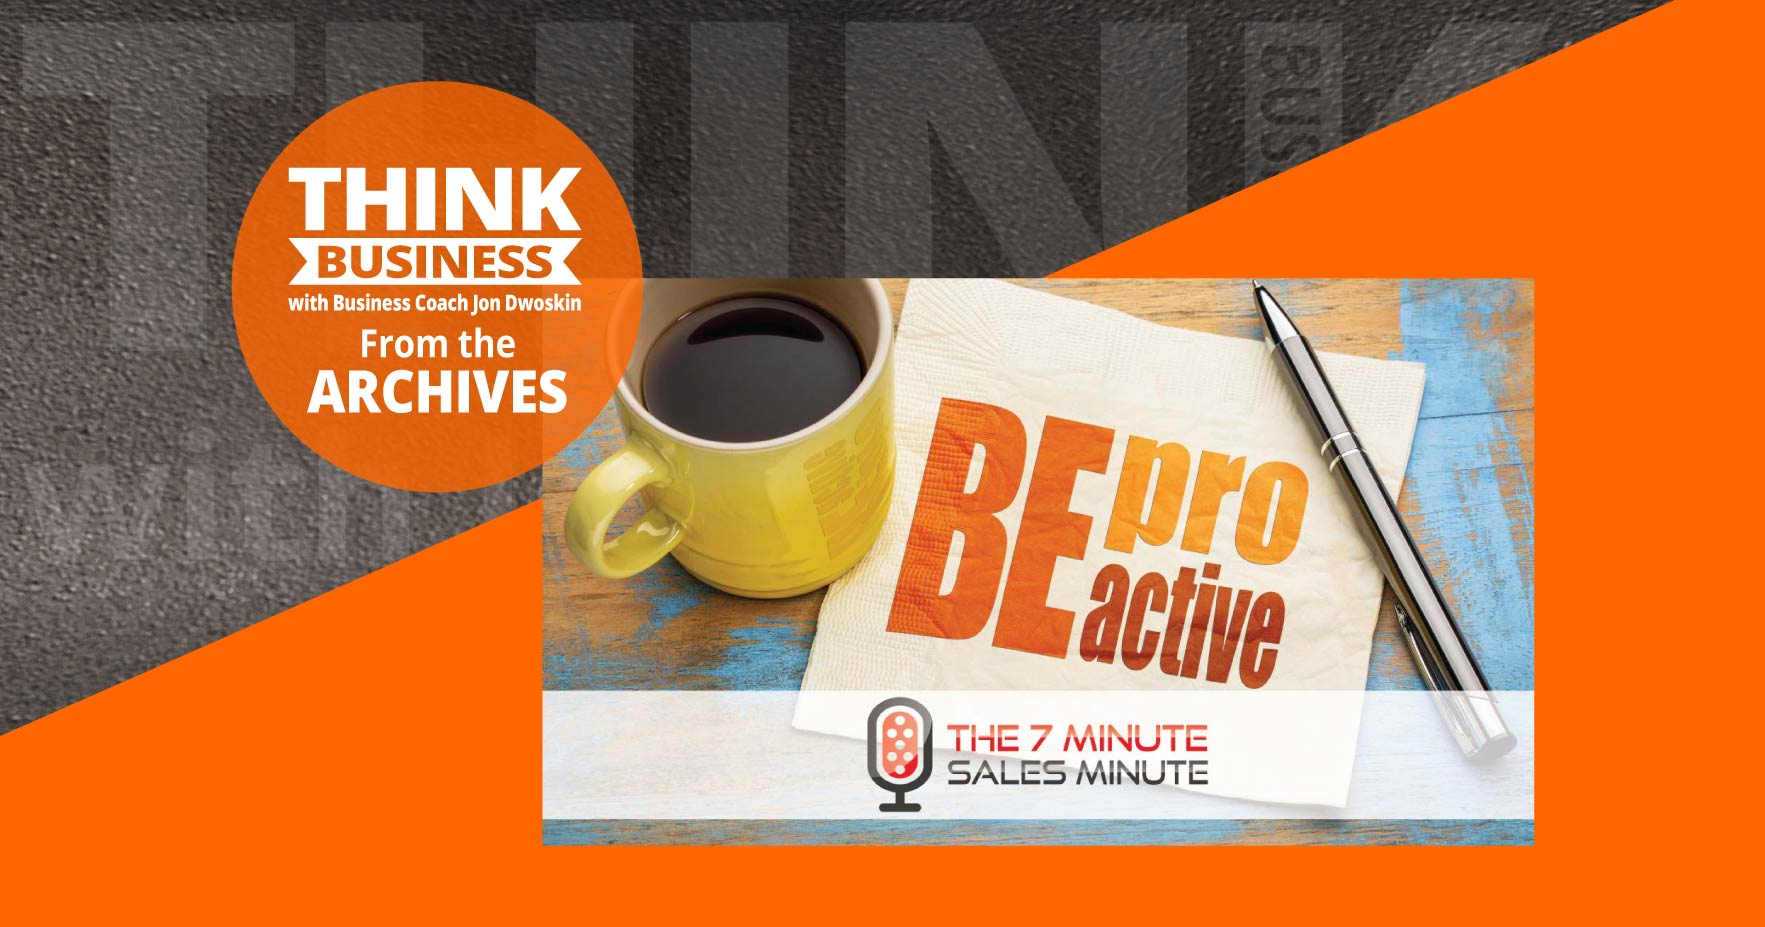 THINK Business Podcast: Being Proactive and Taking Lead